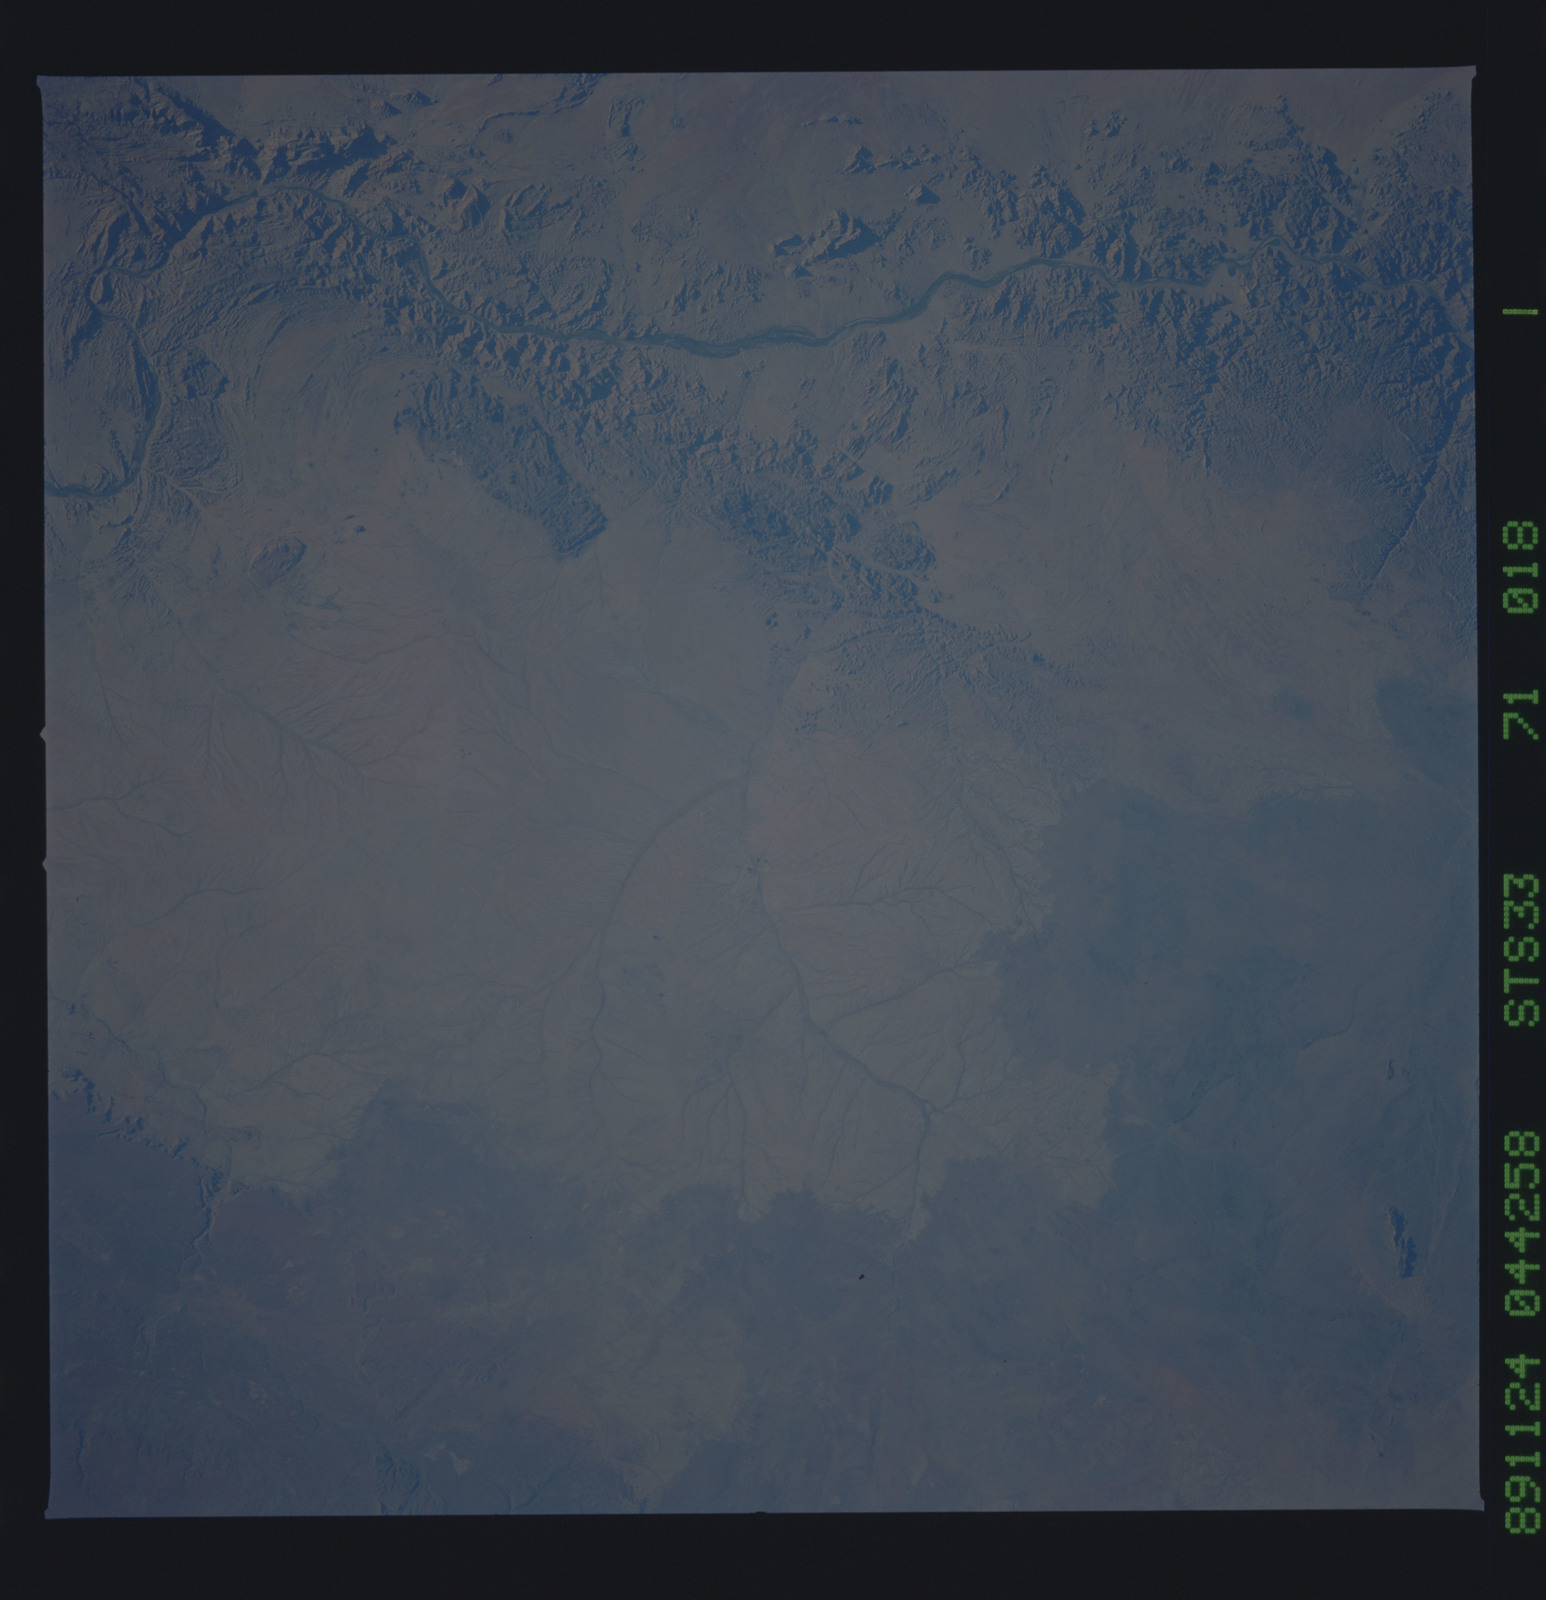 S33-71-018 - STS-033 - STS-33 earth observations